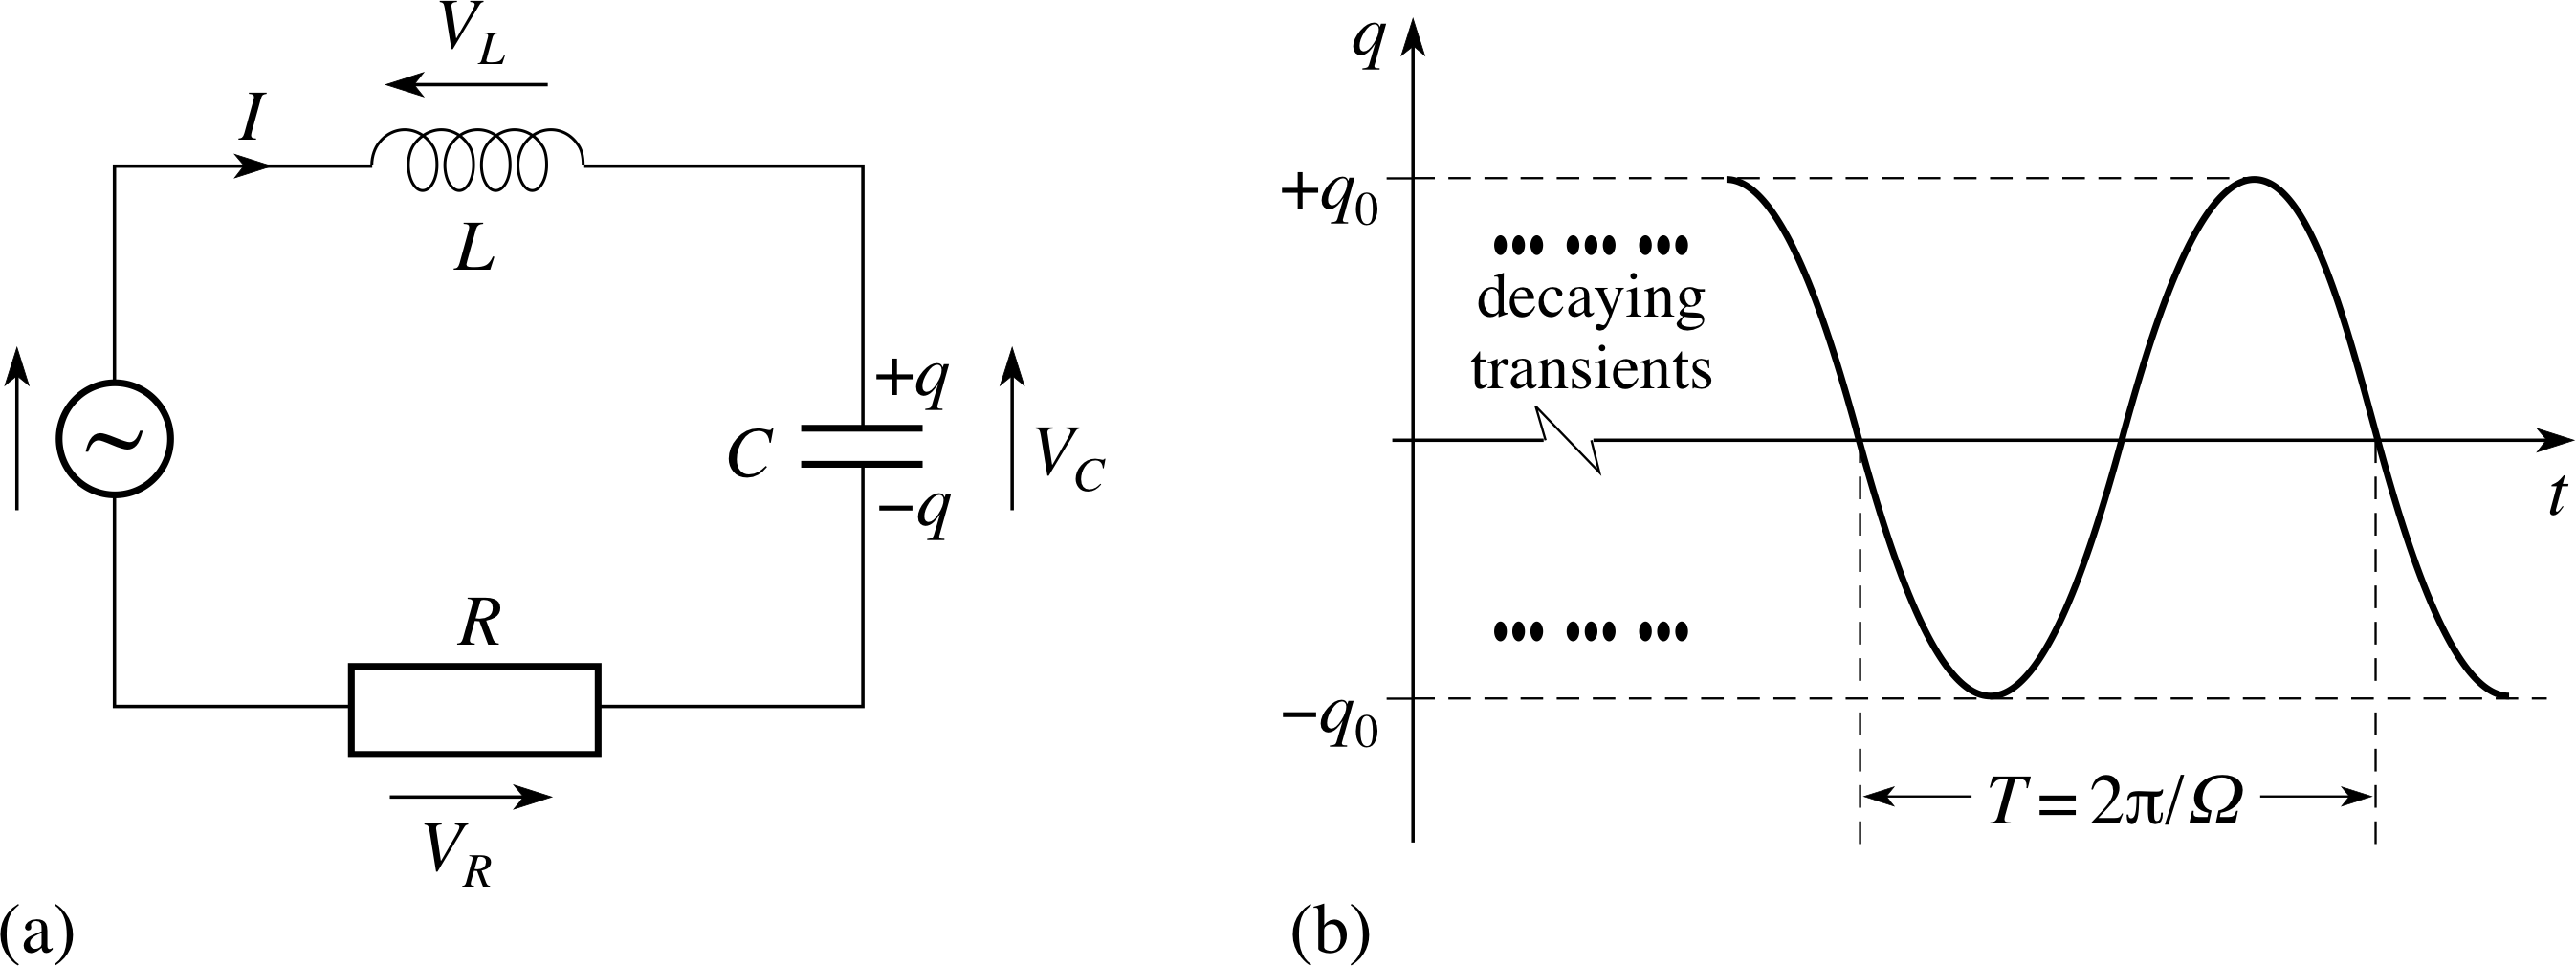 Pplato Flap Phys 54 Ac Circuits And Electrical Oscillations This Is A Very Simple Basic Circuit Diagram Like You Would Find On 35 Driven In Lcr